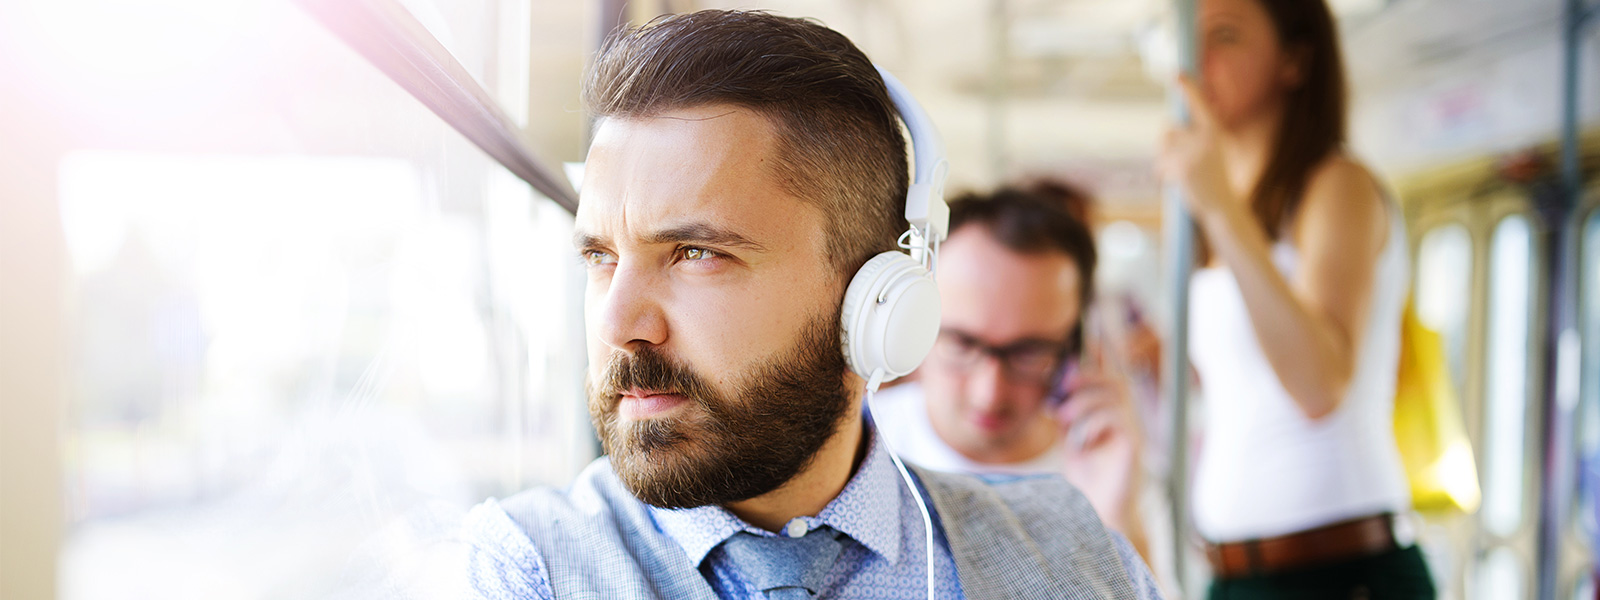 Bearded young professional in headphones looking out the window